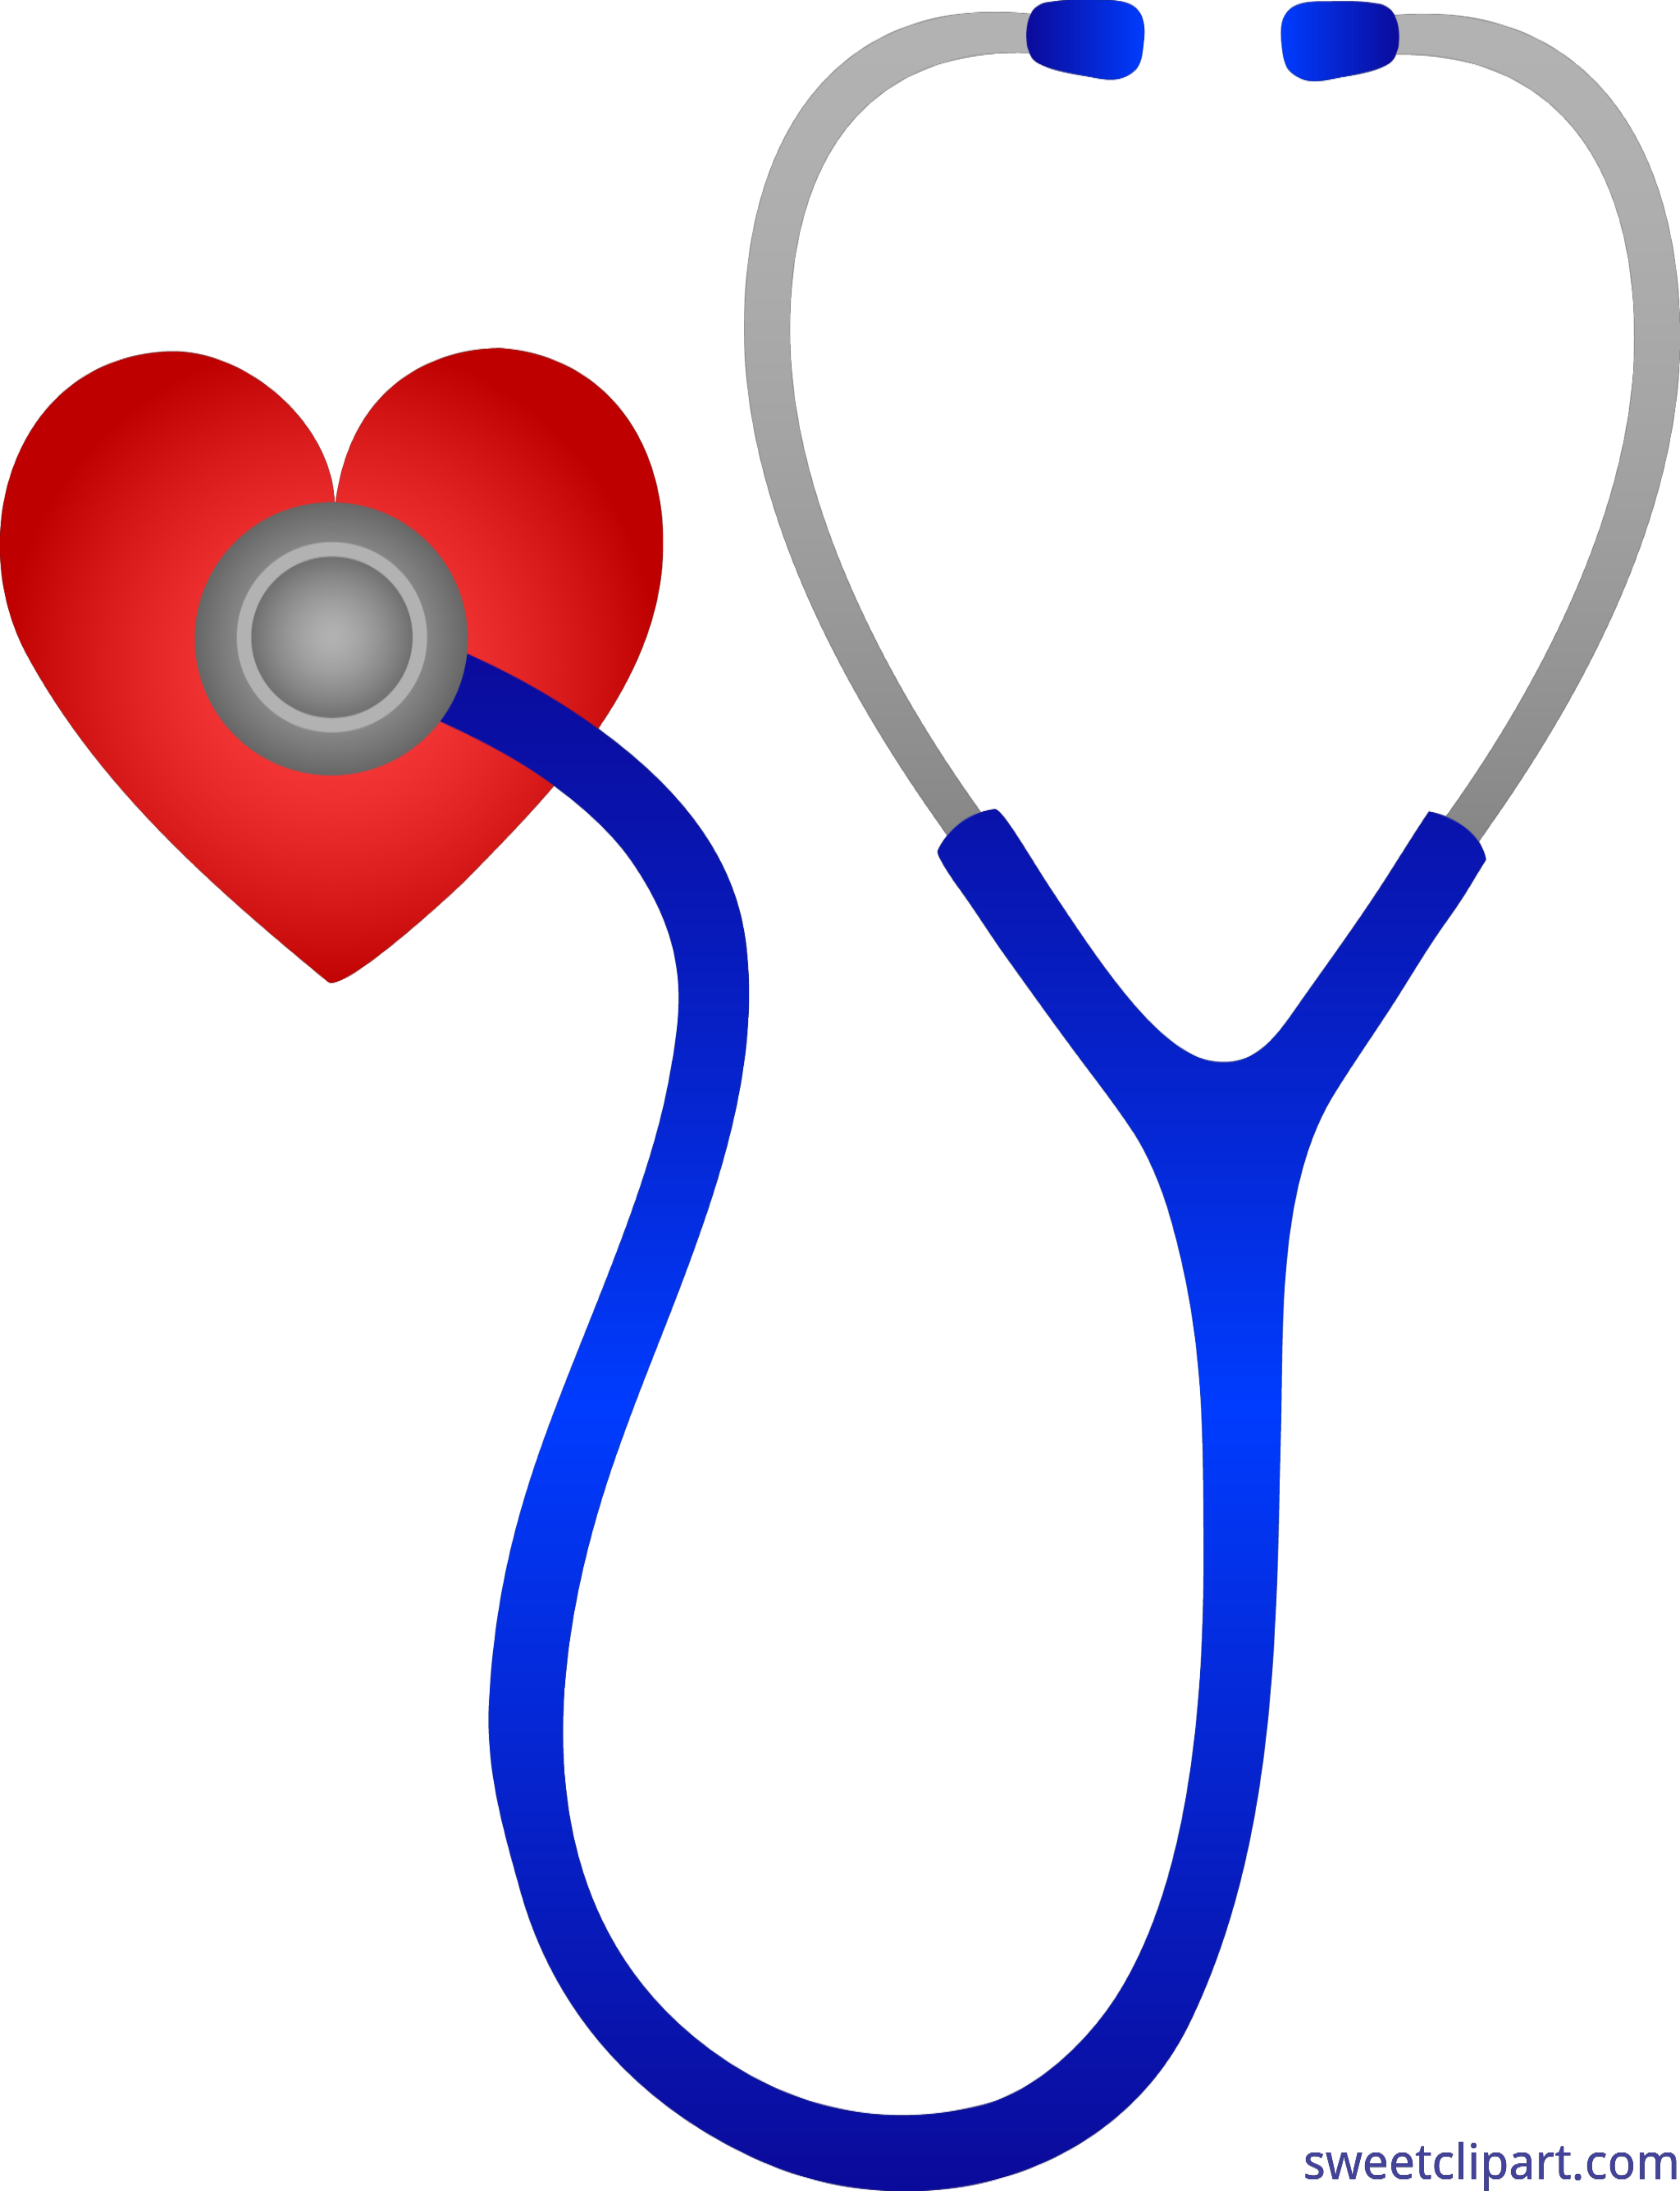 Transparent stethoscope uses. Doctors with heart clip